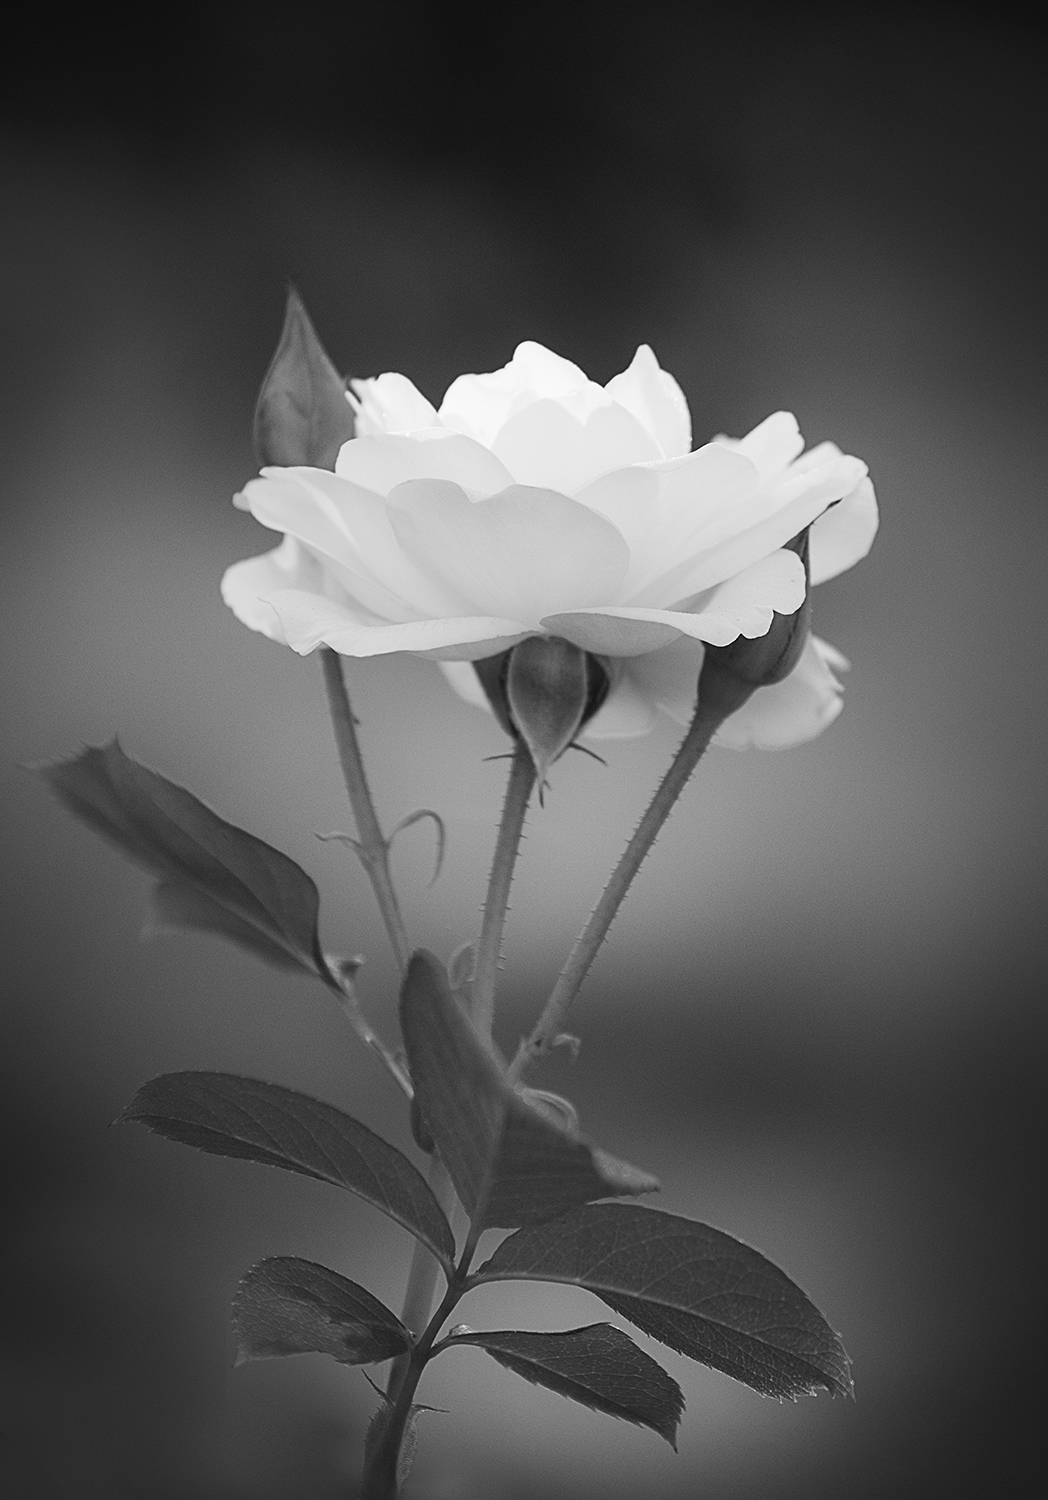 Black and white pictures of flowers new house designs flowers in black and white annette schreiber fine art photography mightylinksfo